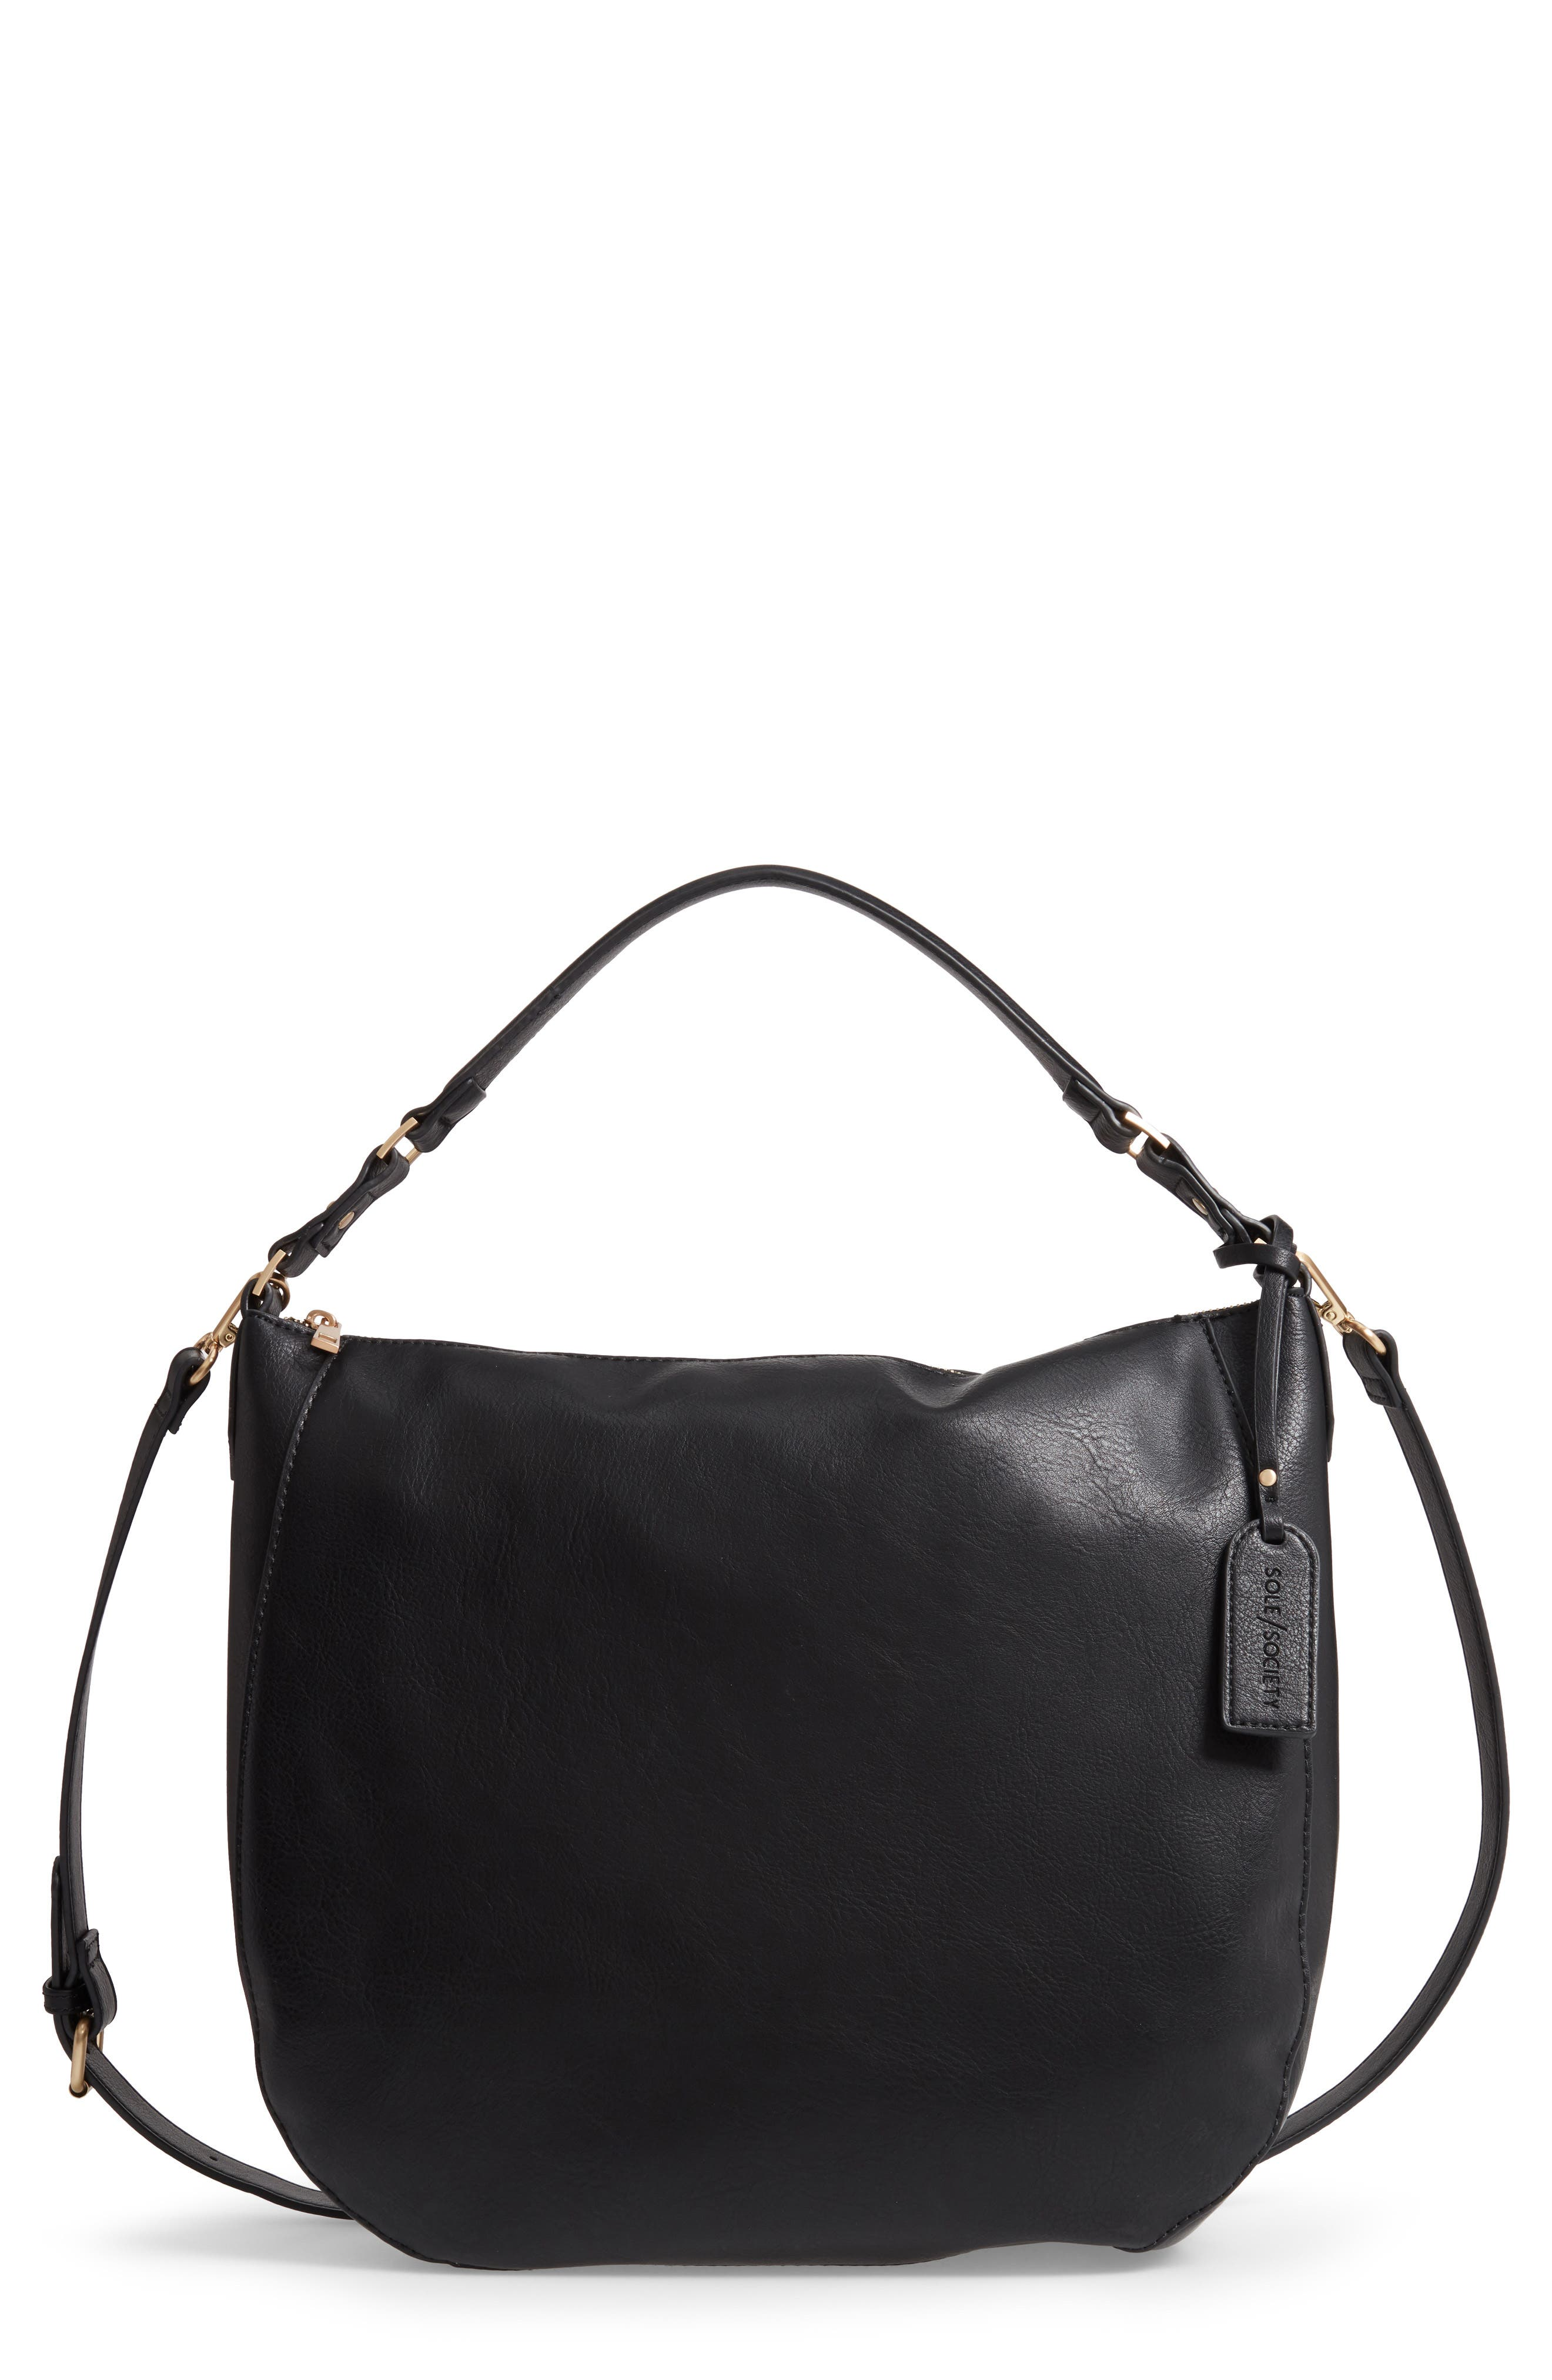 SOLE SOCIETY Marah Faux Leather Tote, Main, color, 001